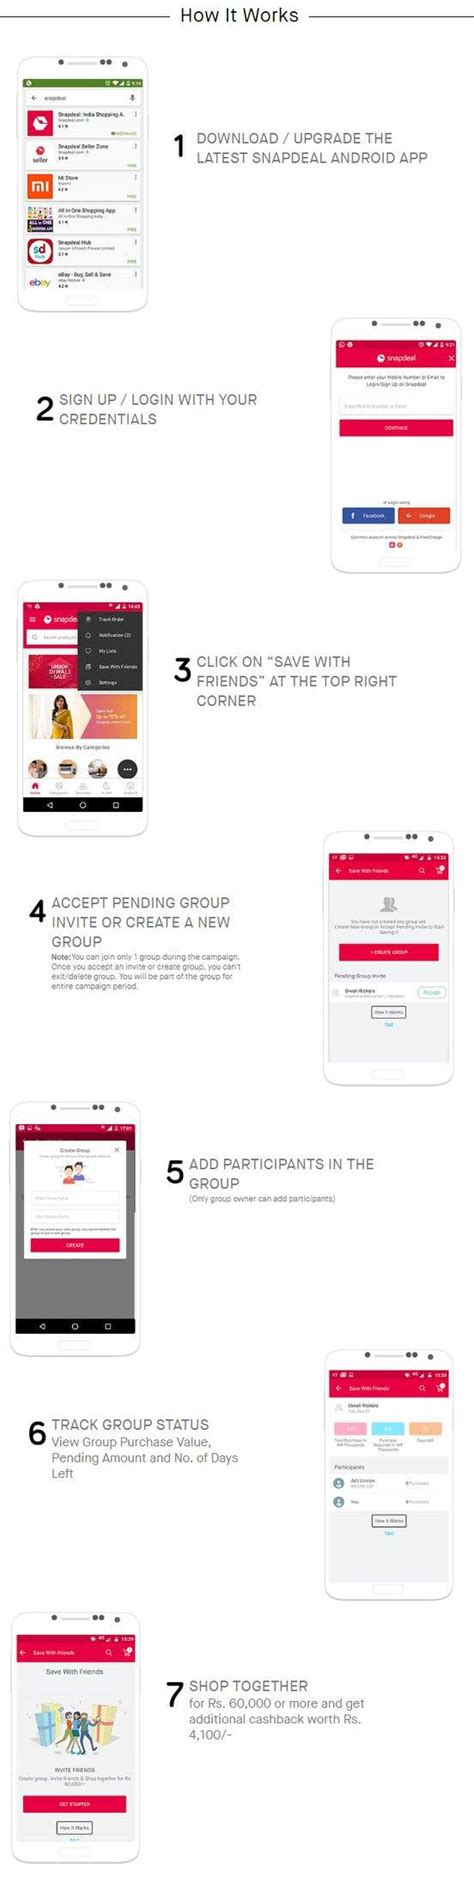 snapdeal mobile app coupons snapdeal save with friends offers get rs 4 100 this